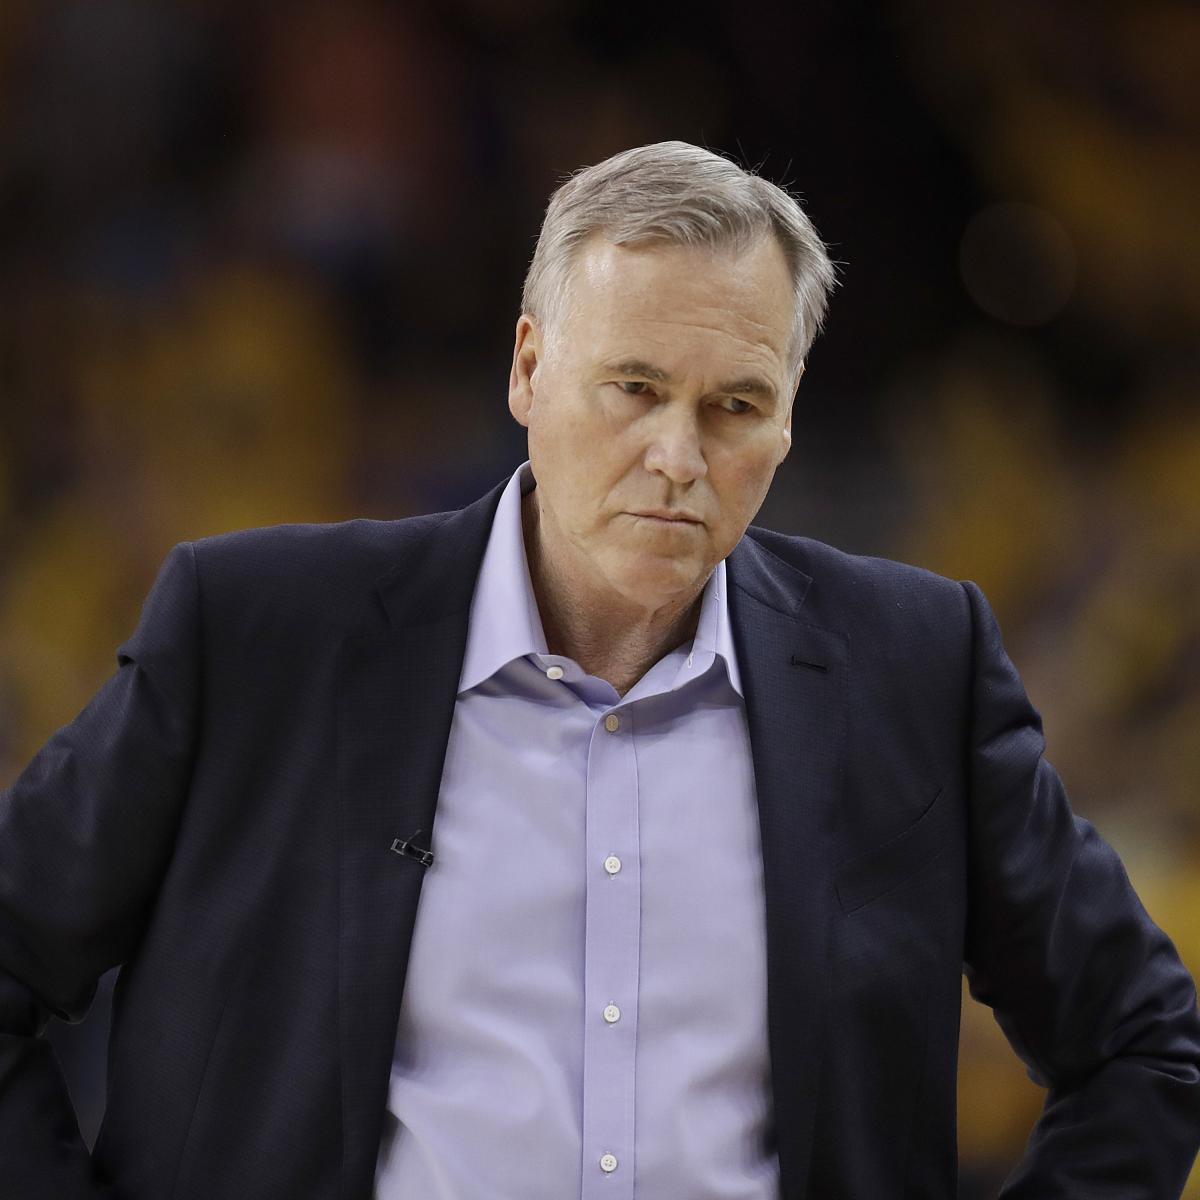 Rockets Vs Warriors Tickets Game 3: Mike D'Antoni Says Rockets 'Played Soft' In Game 3 Blowout